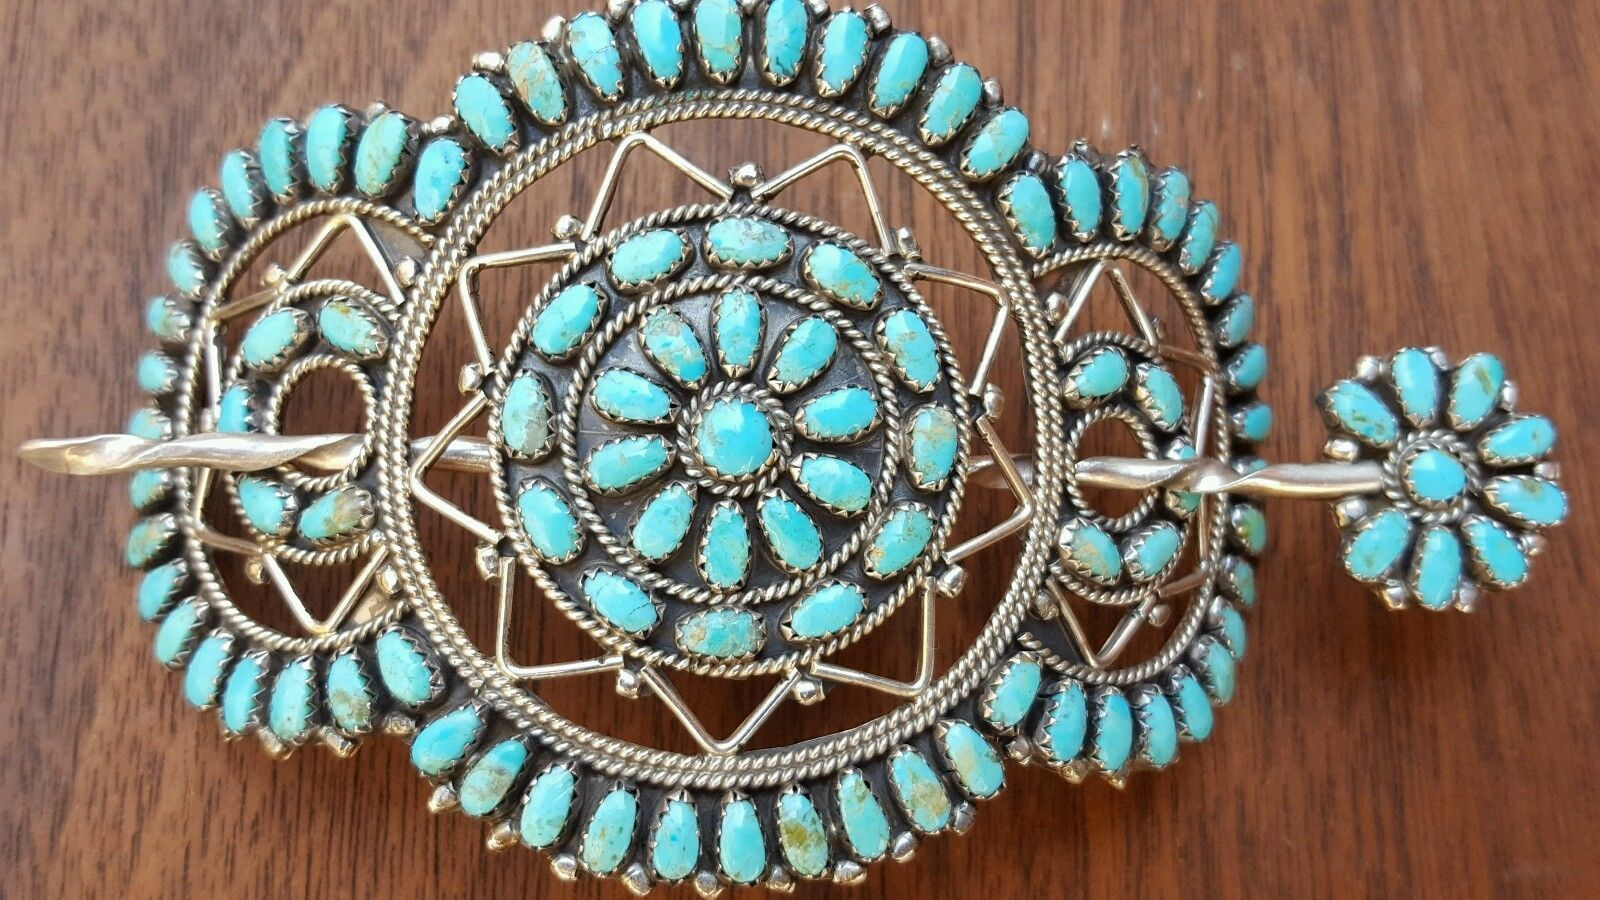 NAVAJO LARRY MOSES BEGAY STERLING SILVER PETIT POINT TURQUOISE HAIR BARRETTE